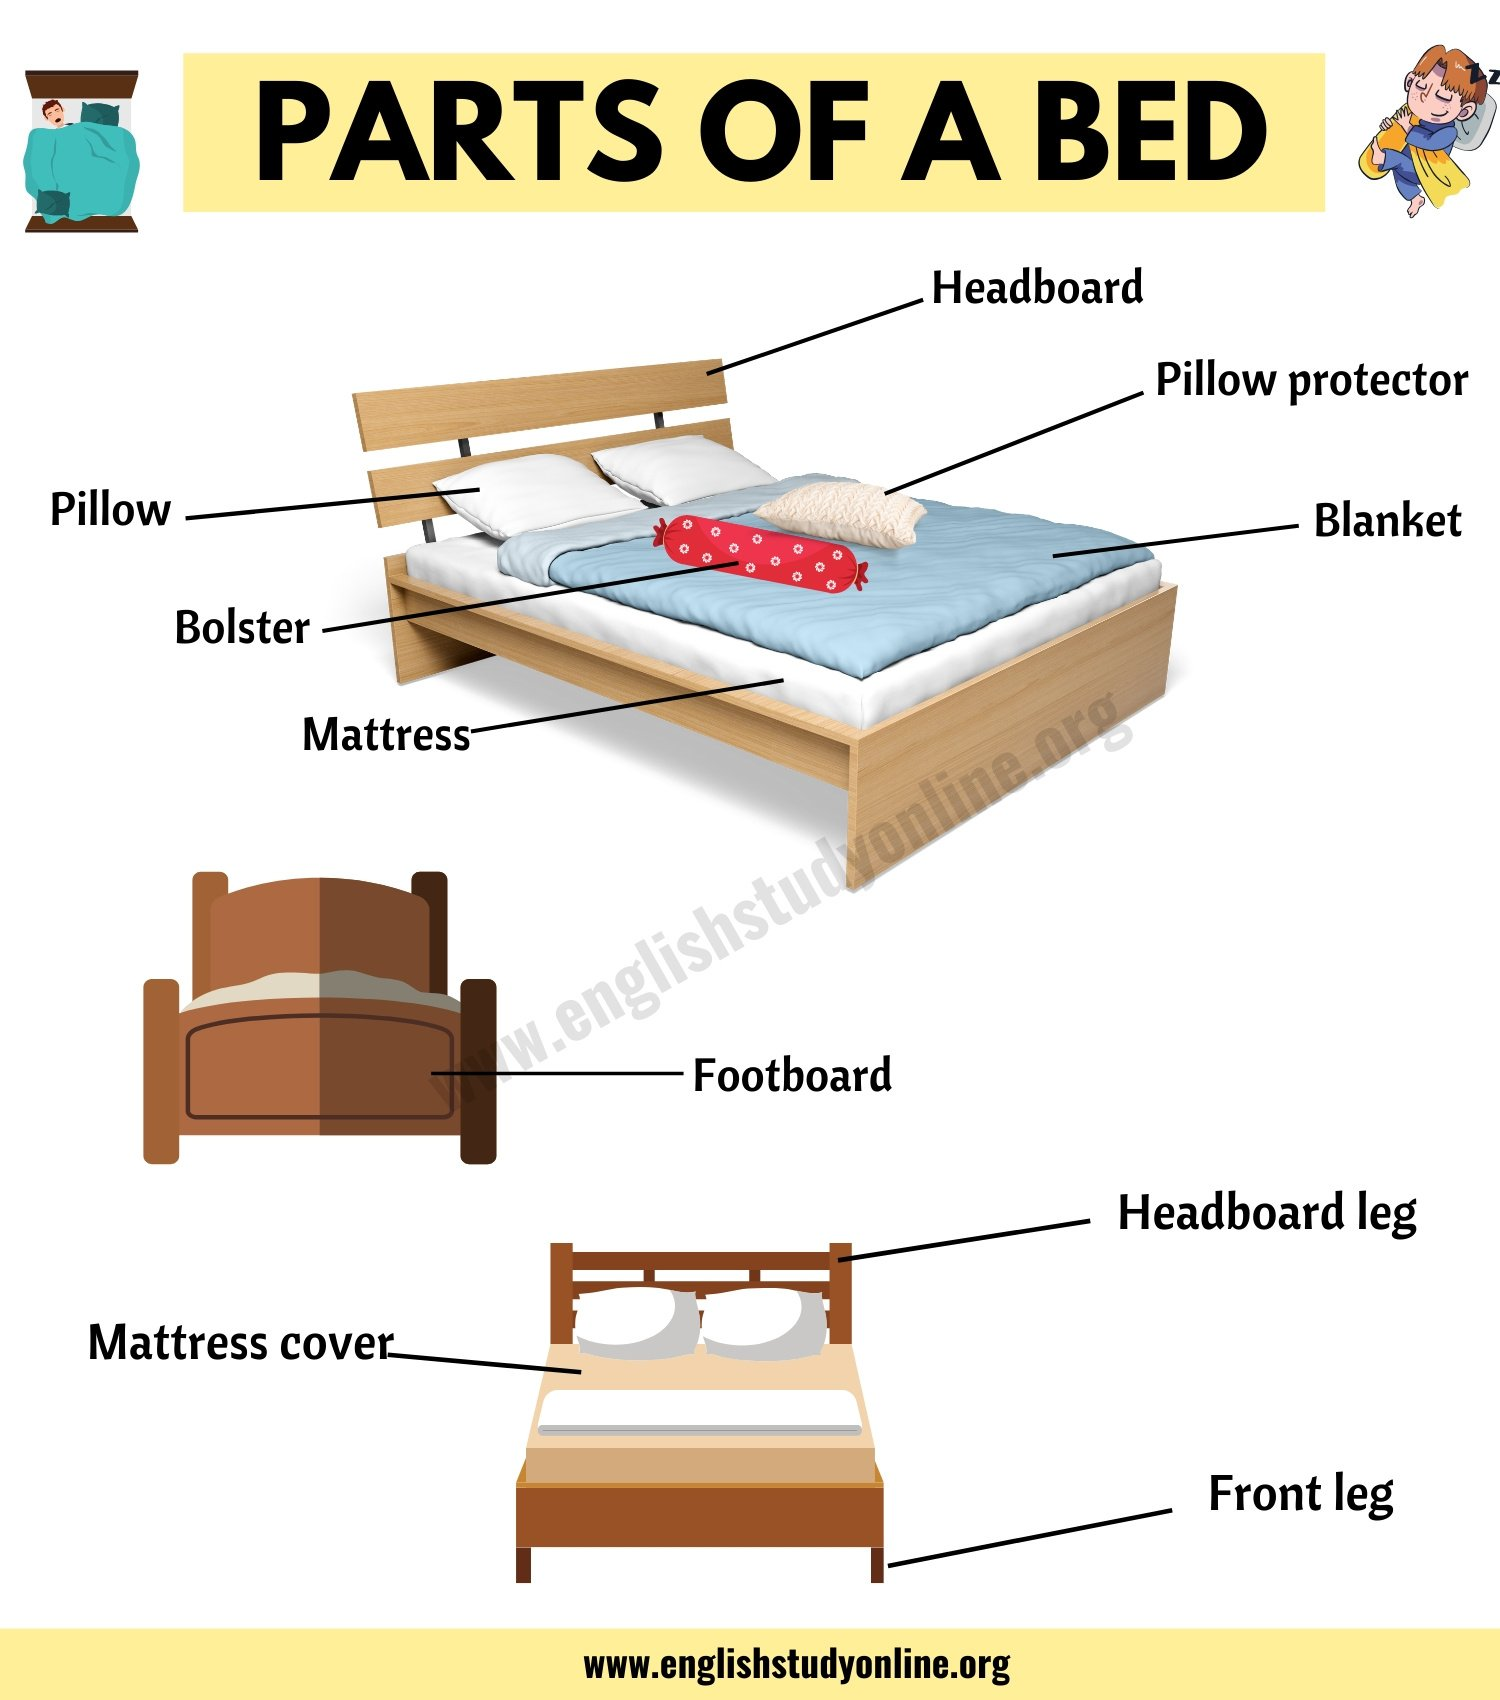 Parts of A Bed